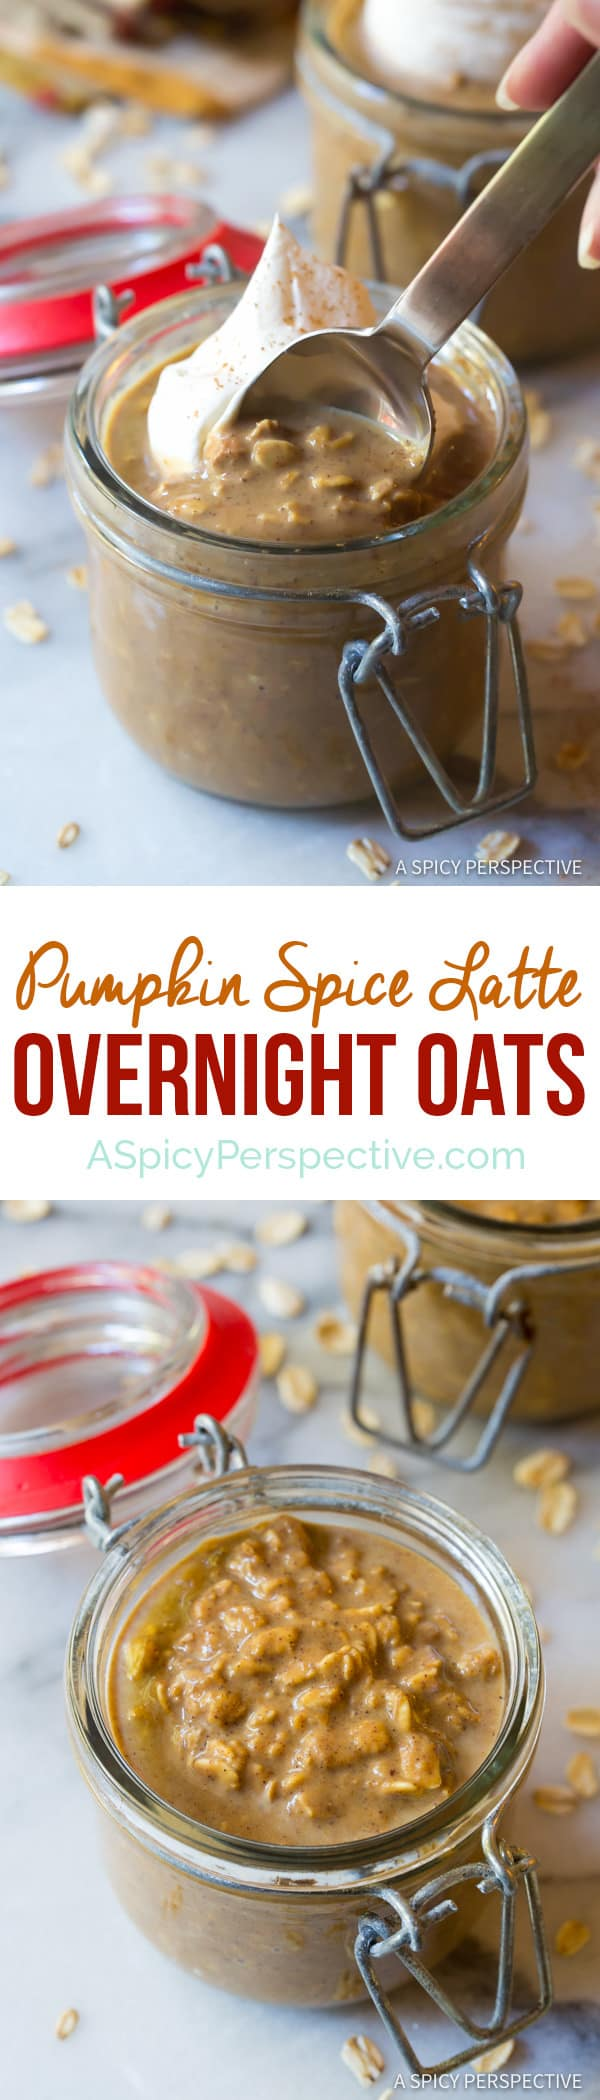 Easy Pumpkin Spice Latte Overnight Oatmeal Recipe | ASpicyPerspective.com